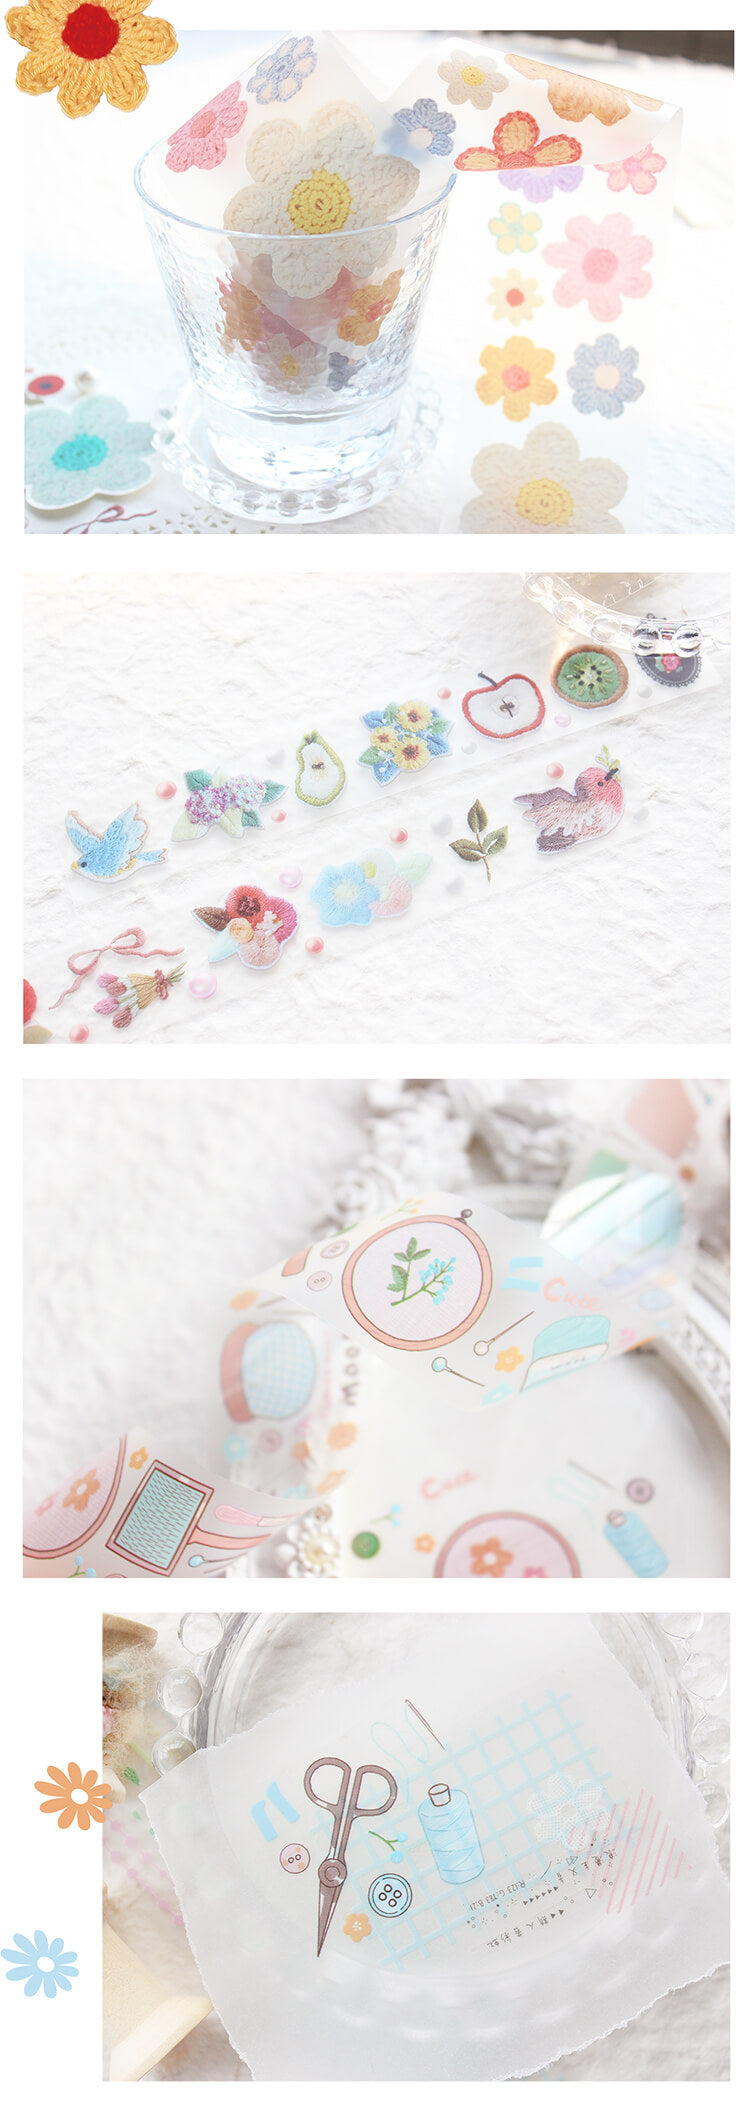 Wool Dessert Embroidery PET Tape